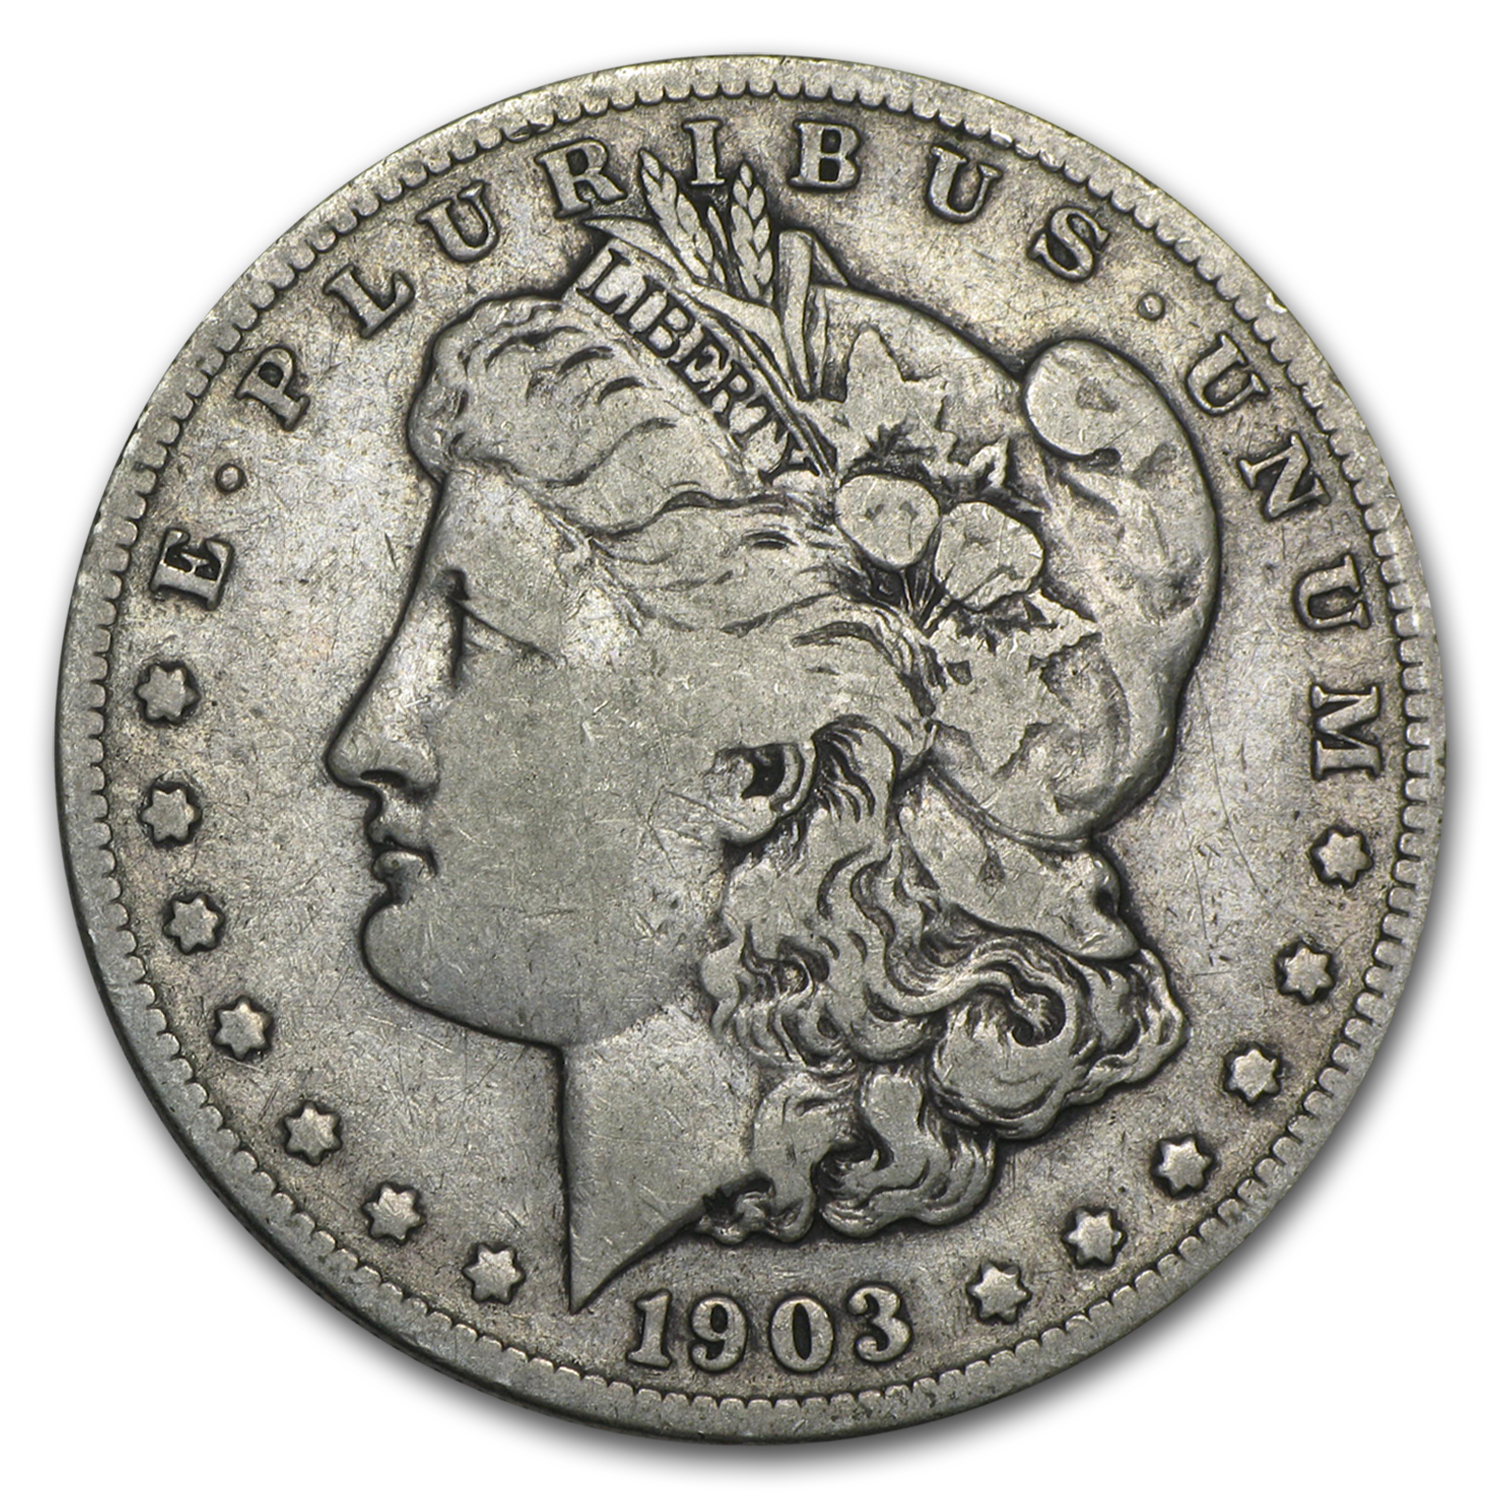 1903-S Morgan Dollar Fine